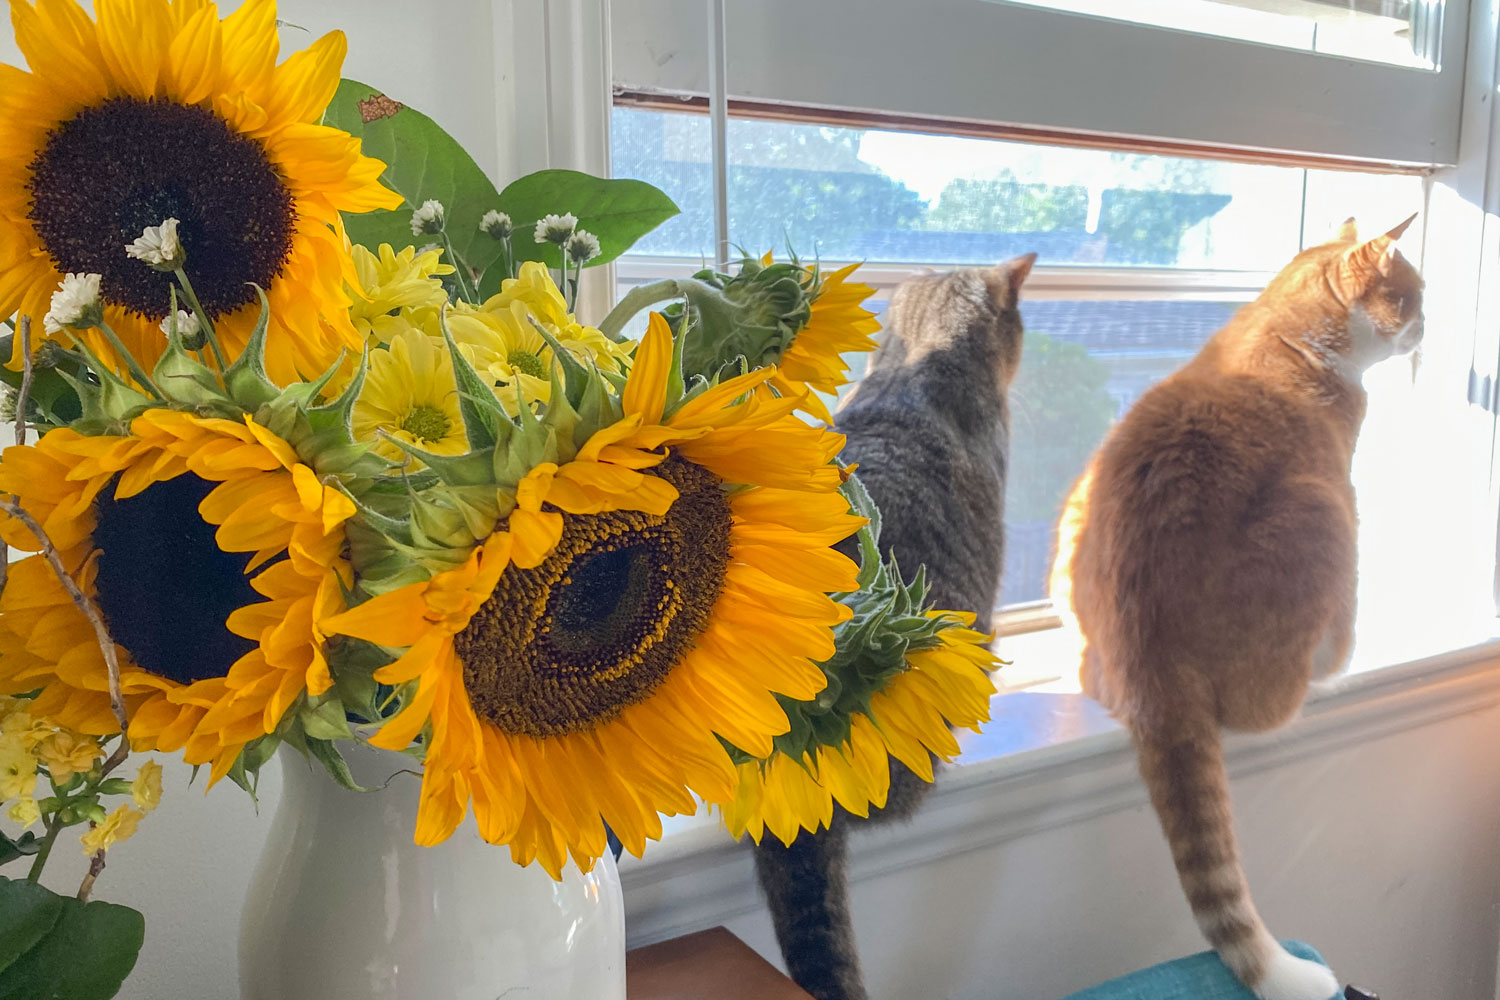 Two cute cats sitting near the window with a sunflower in a vase upfront